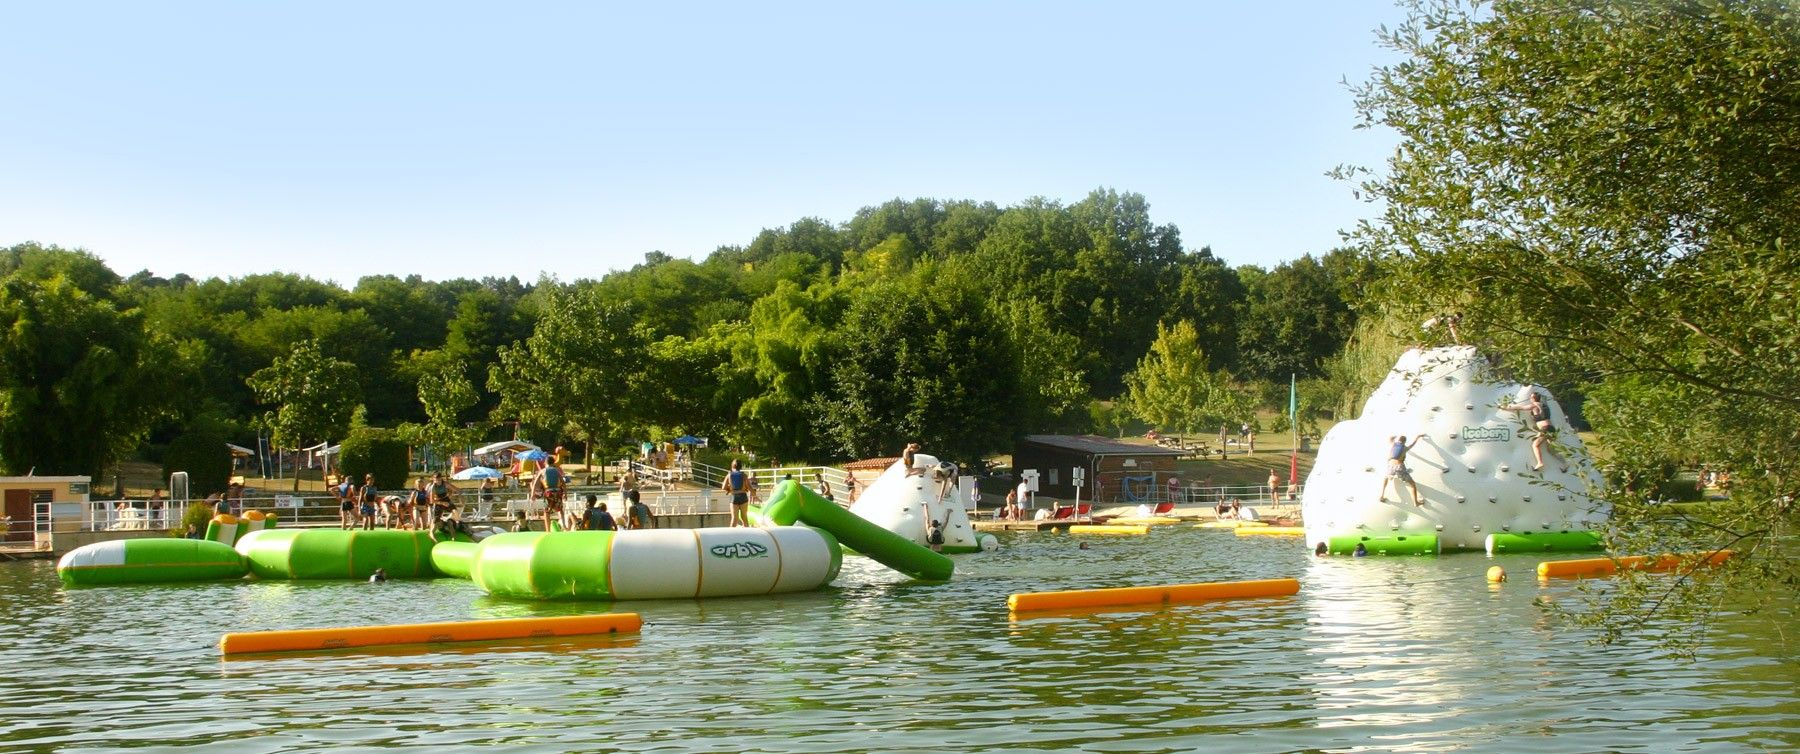 a water park with water inflatables on the pond in Périgord Noir